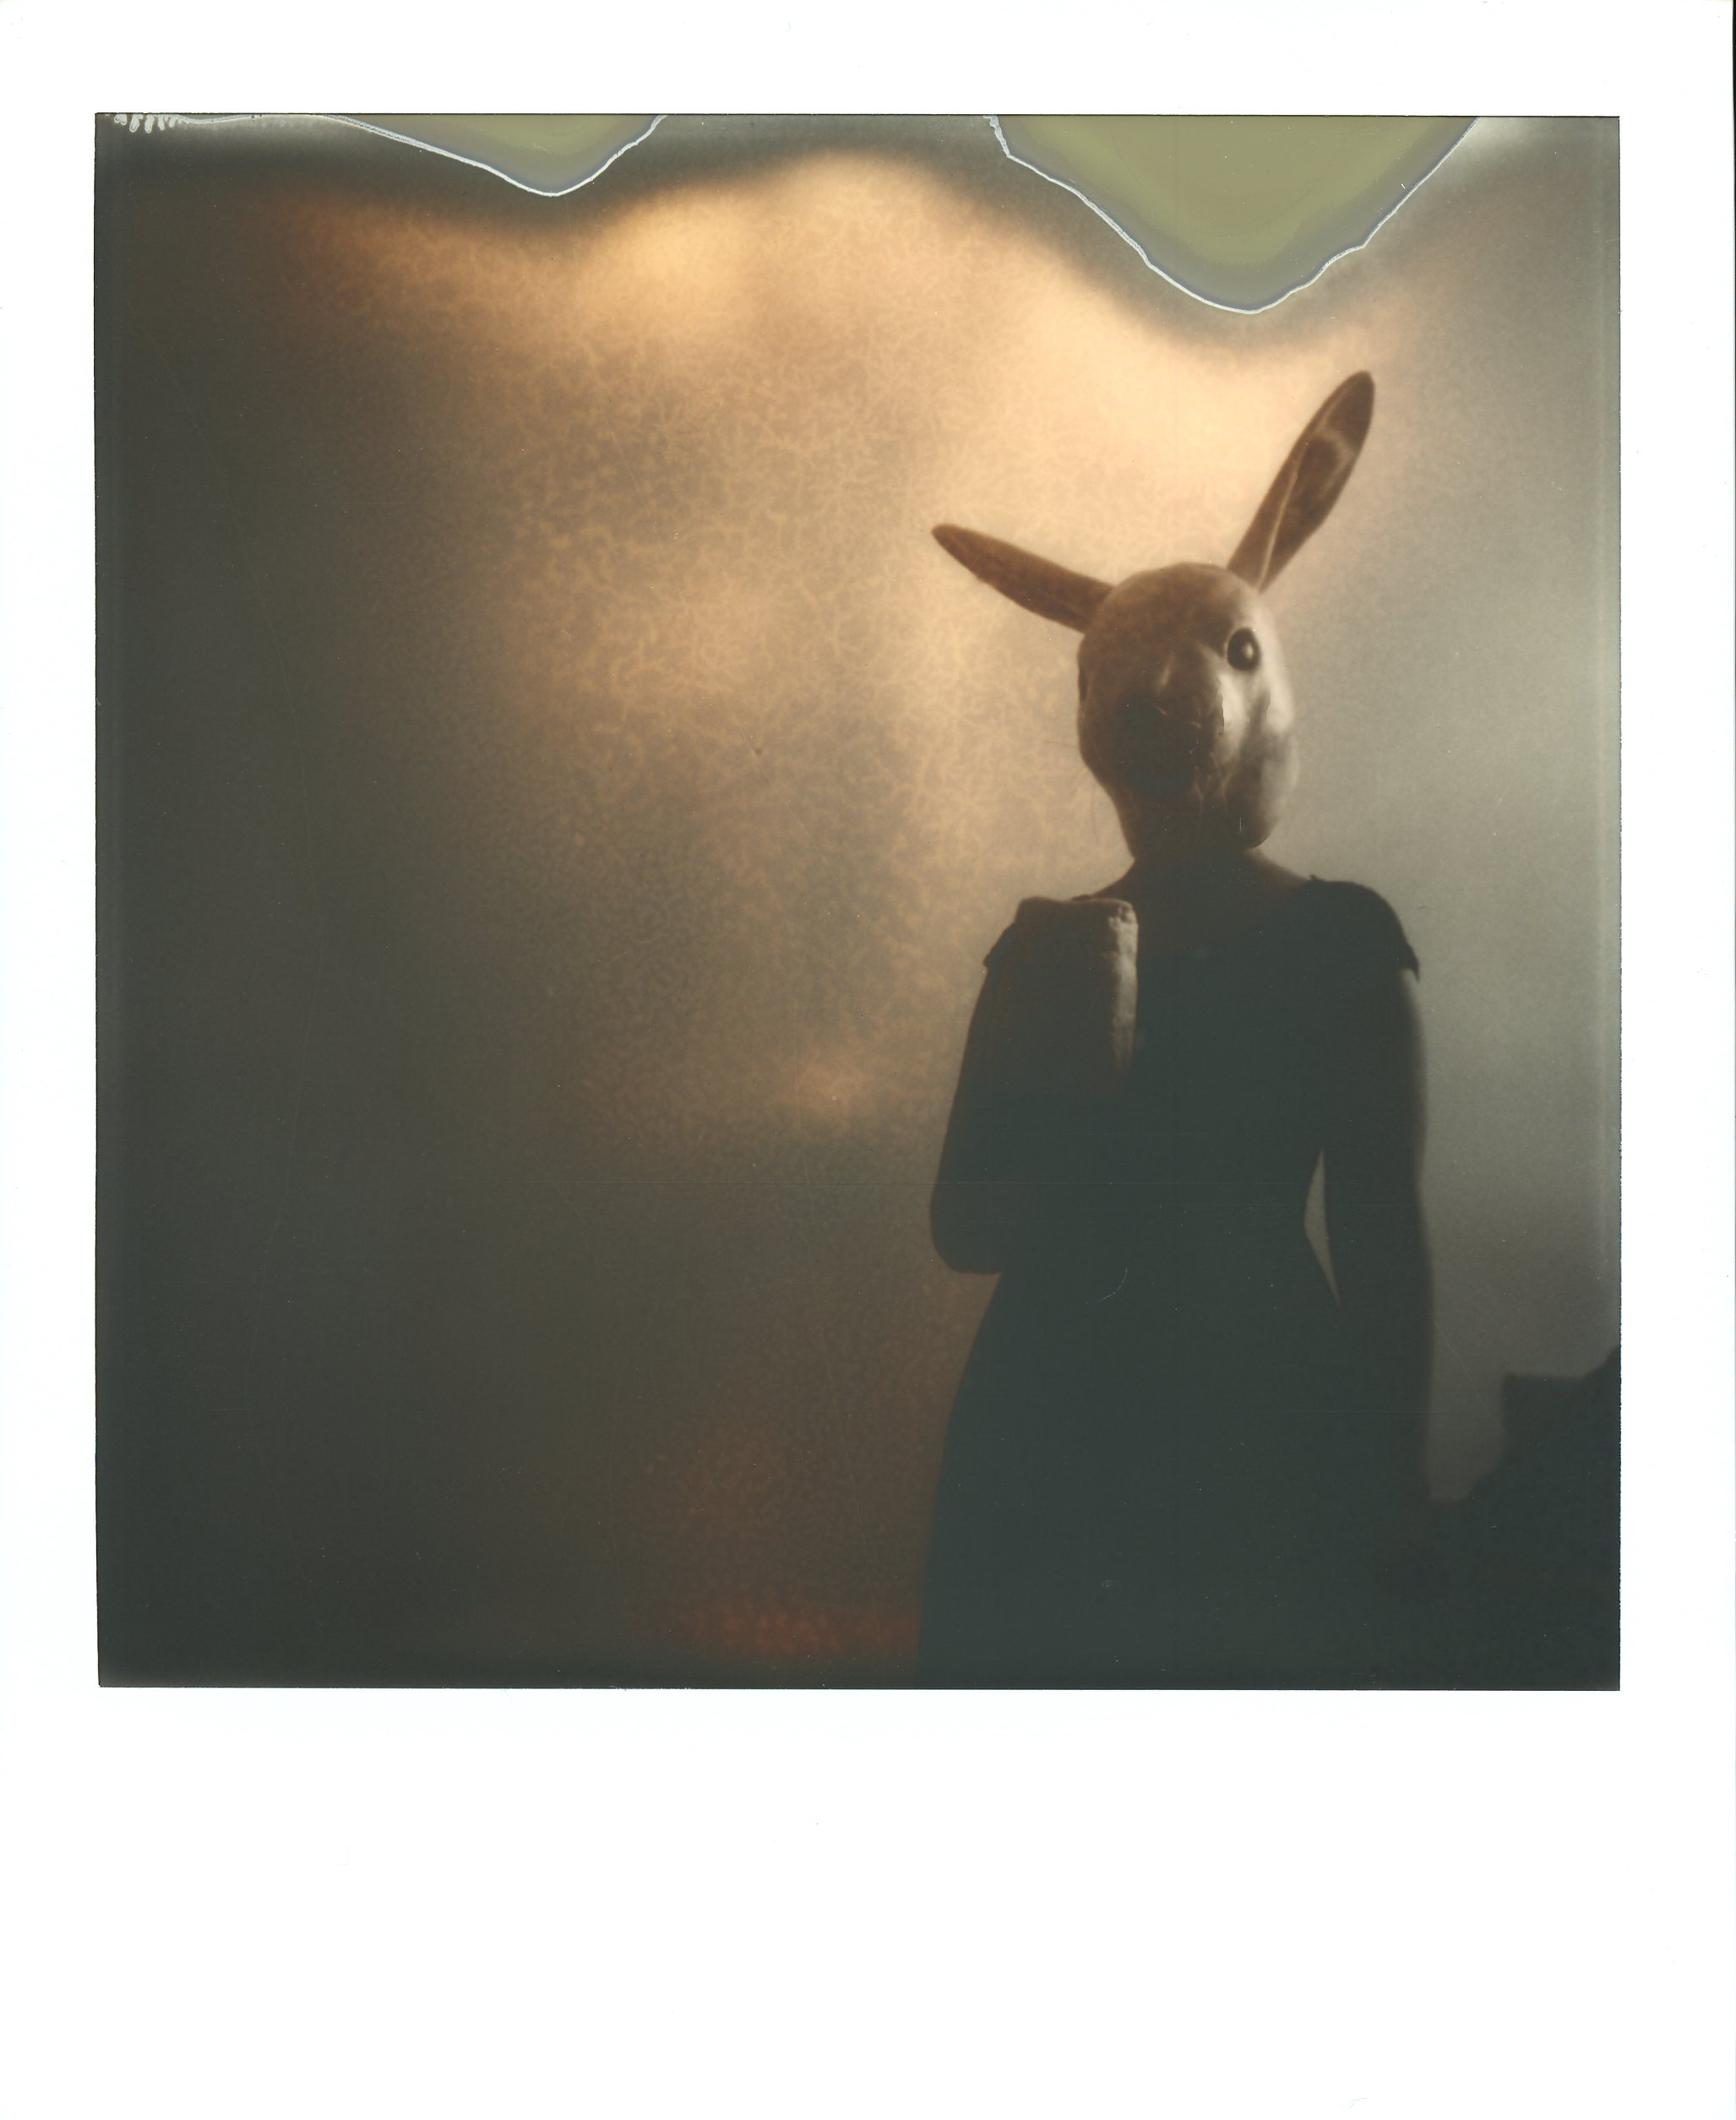 DARK-Little rabbit 1